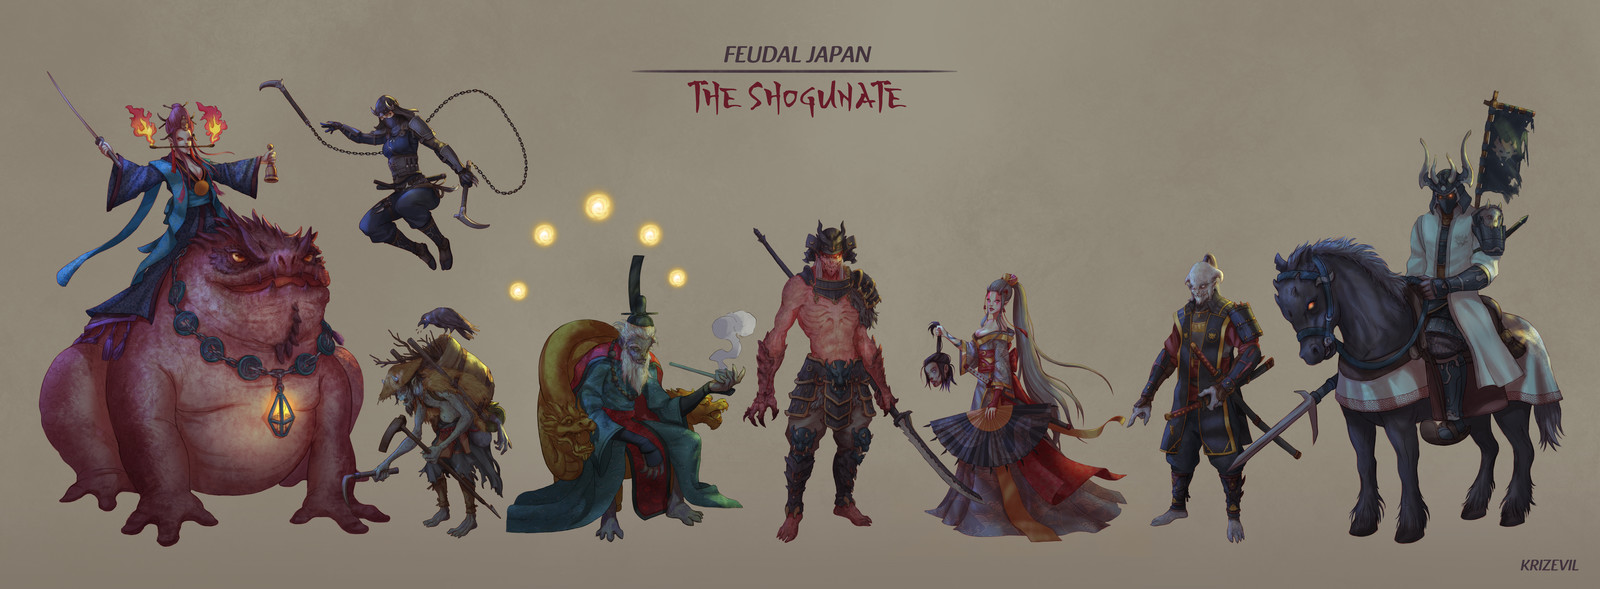 Feudal Japan: The Shogunate